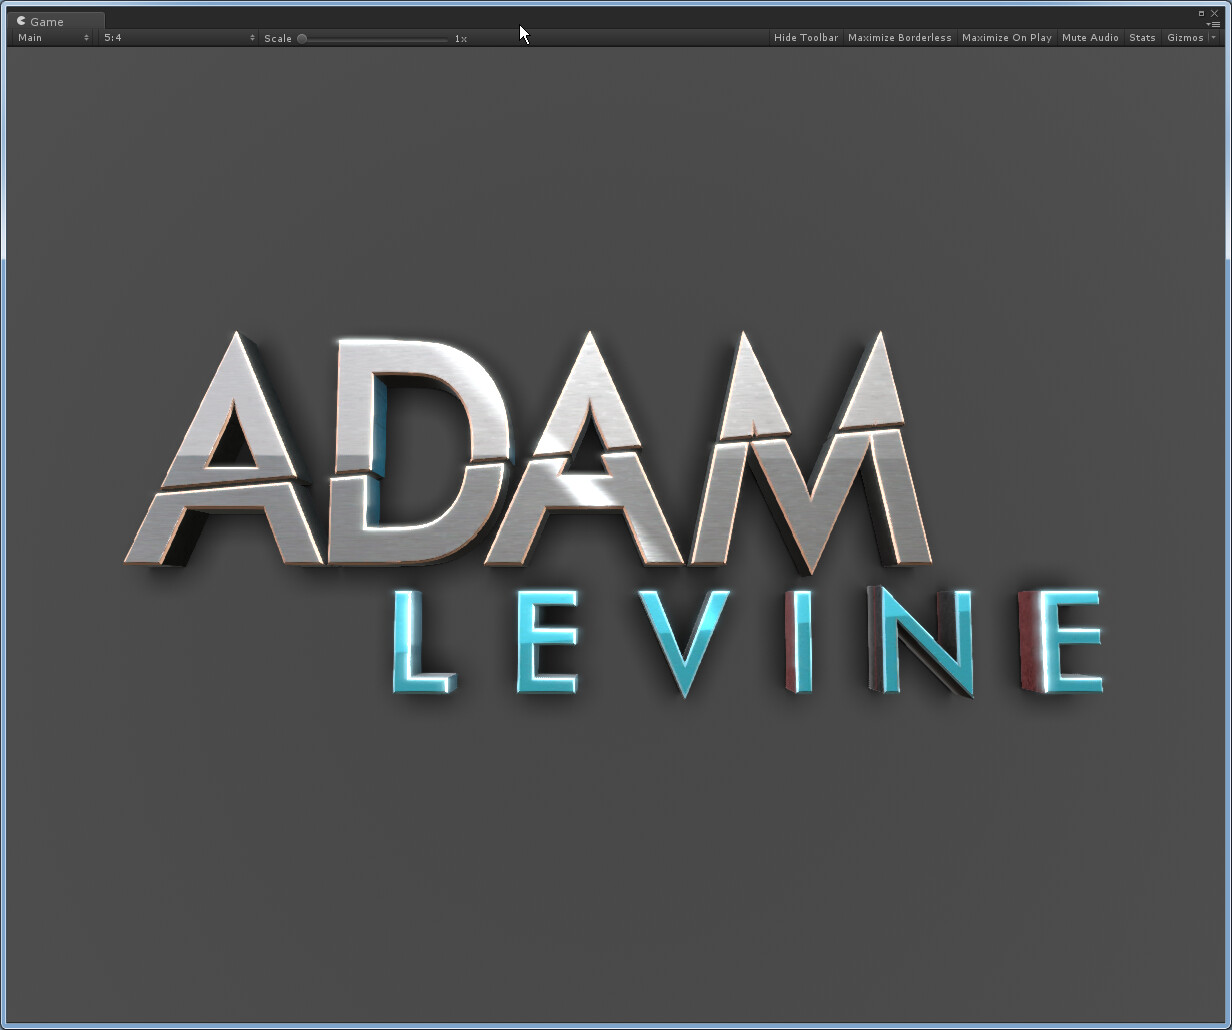 Doug brown adamlogo